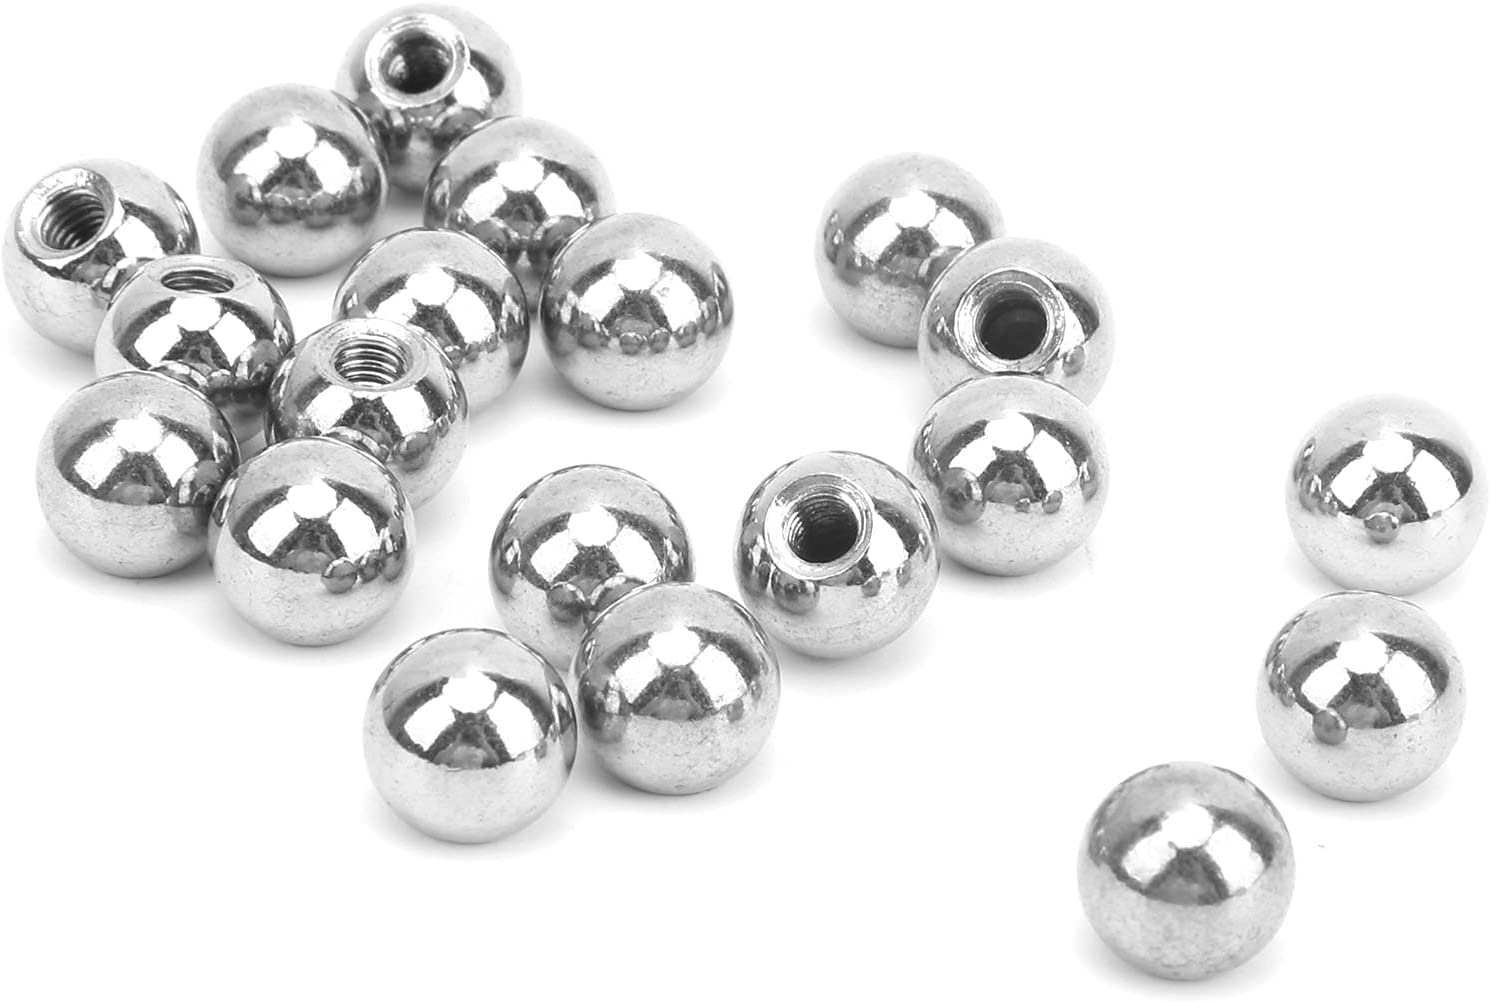 20Pcs Threaded Ball Stainless Steel Phoenix Mall T M4 Drilling Bead Trimming Daily bargain sale